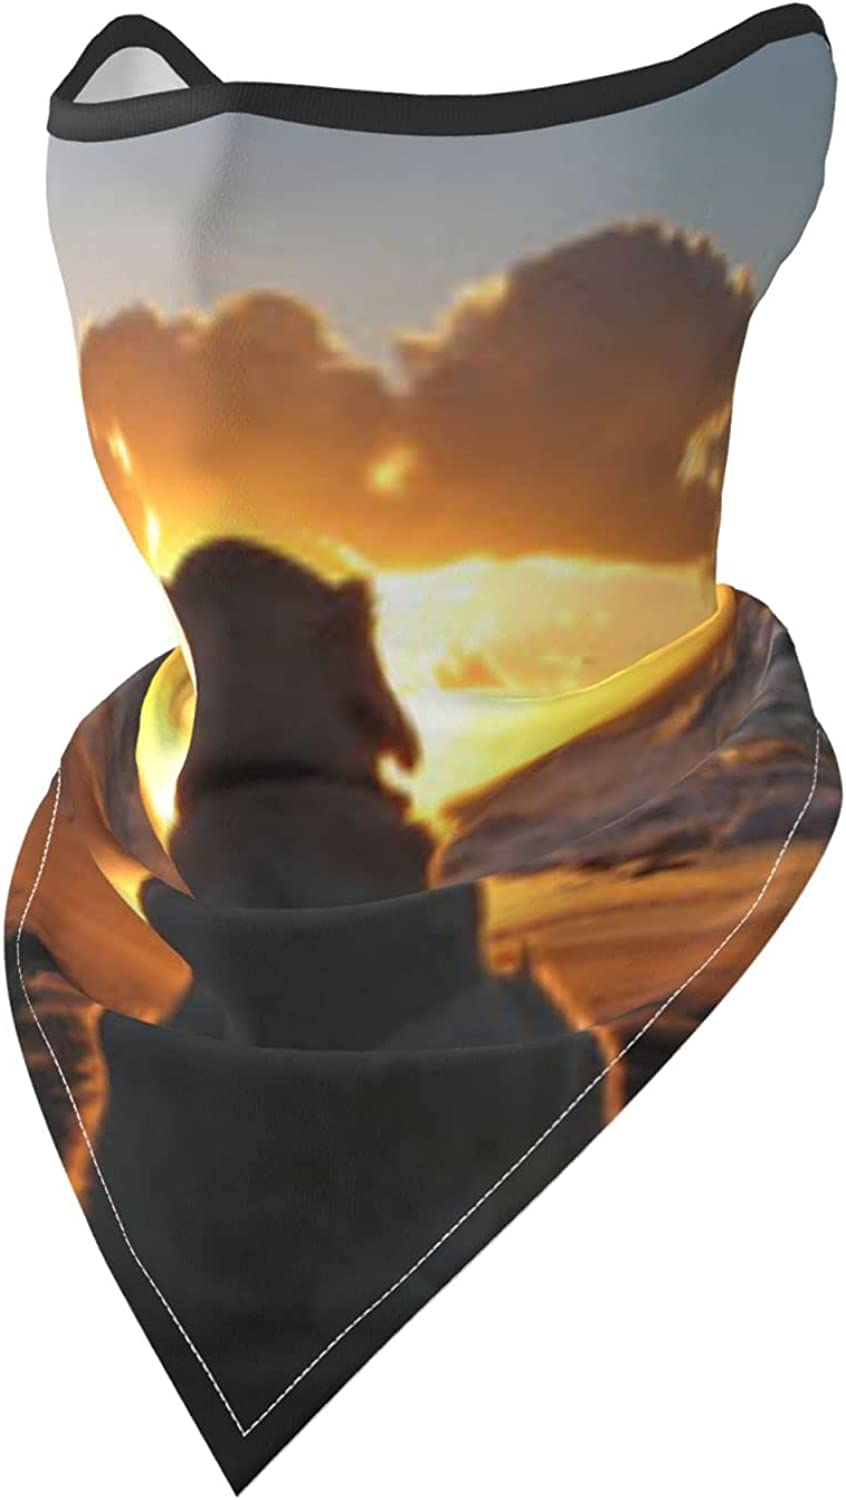 Dog and Sunset Pictures Prints Breathable Bandana Face Mask Neck Gaiter Windproof Sports Mask Scarf Headwear for Men Women Outdoor Hiking Cycling Running Motorcycling